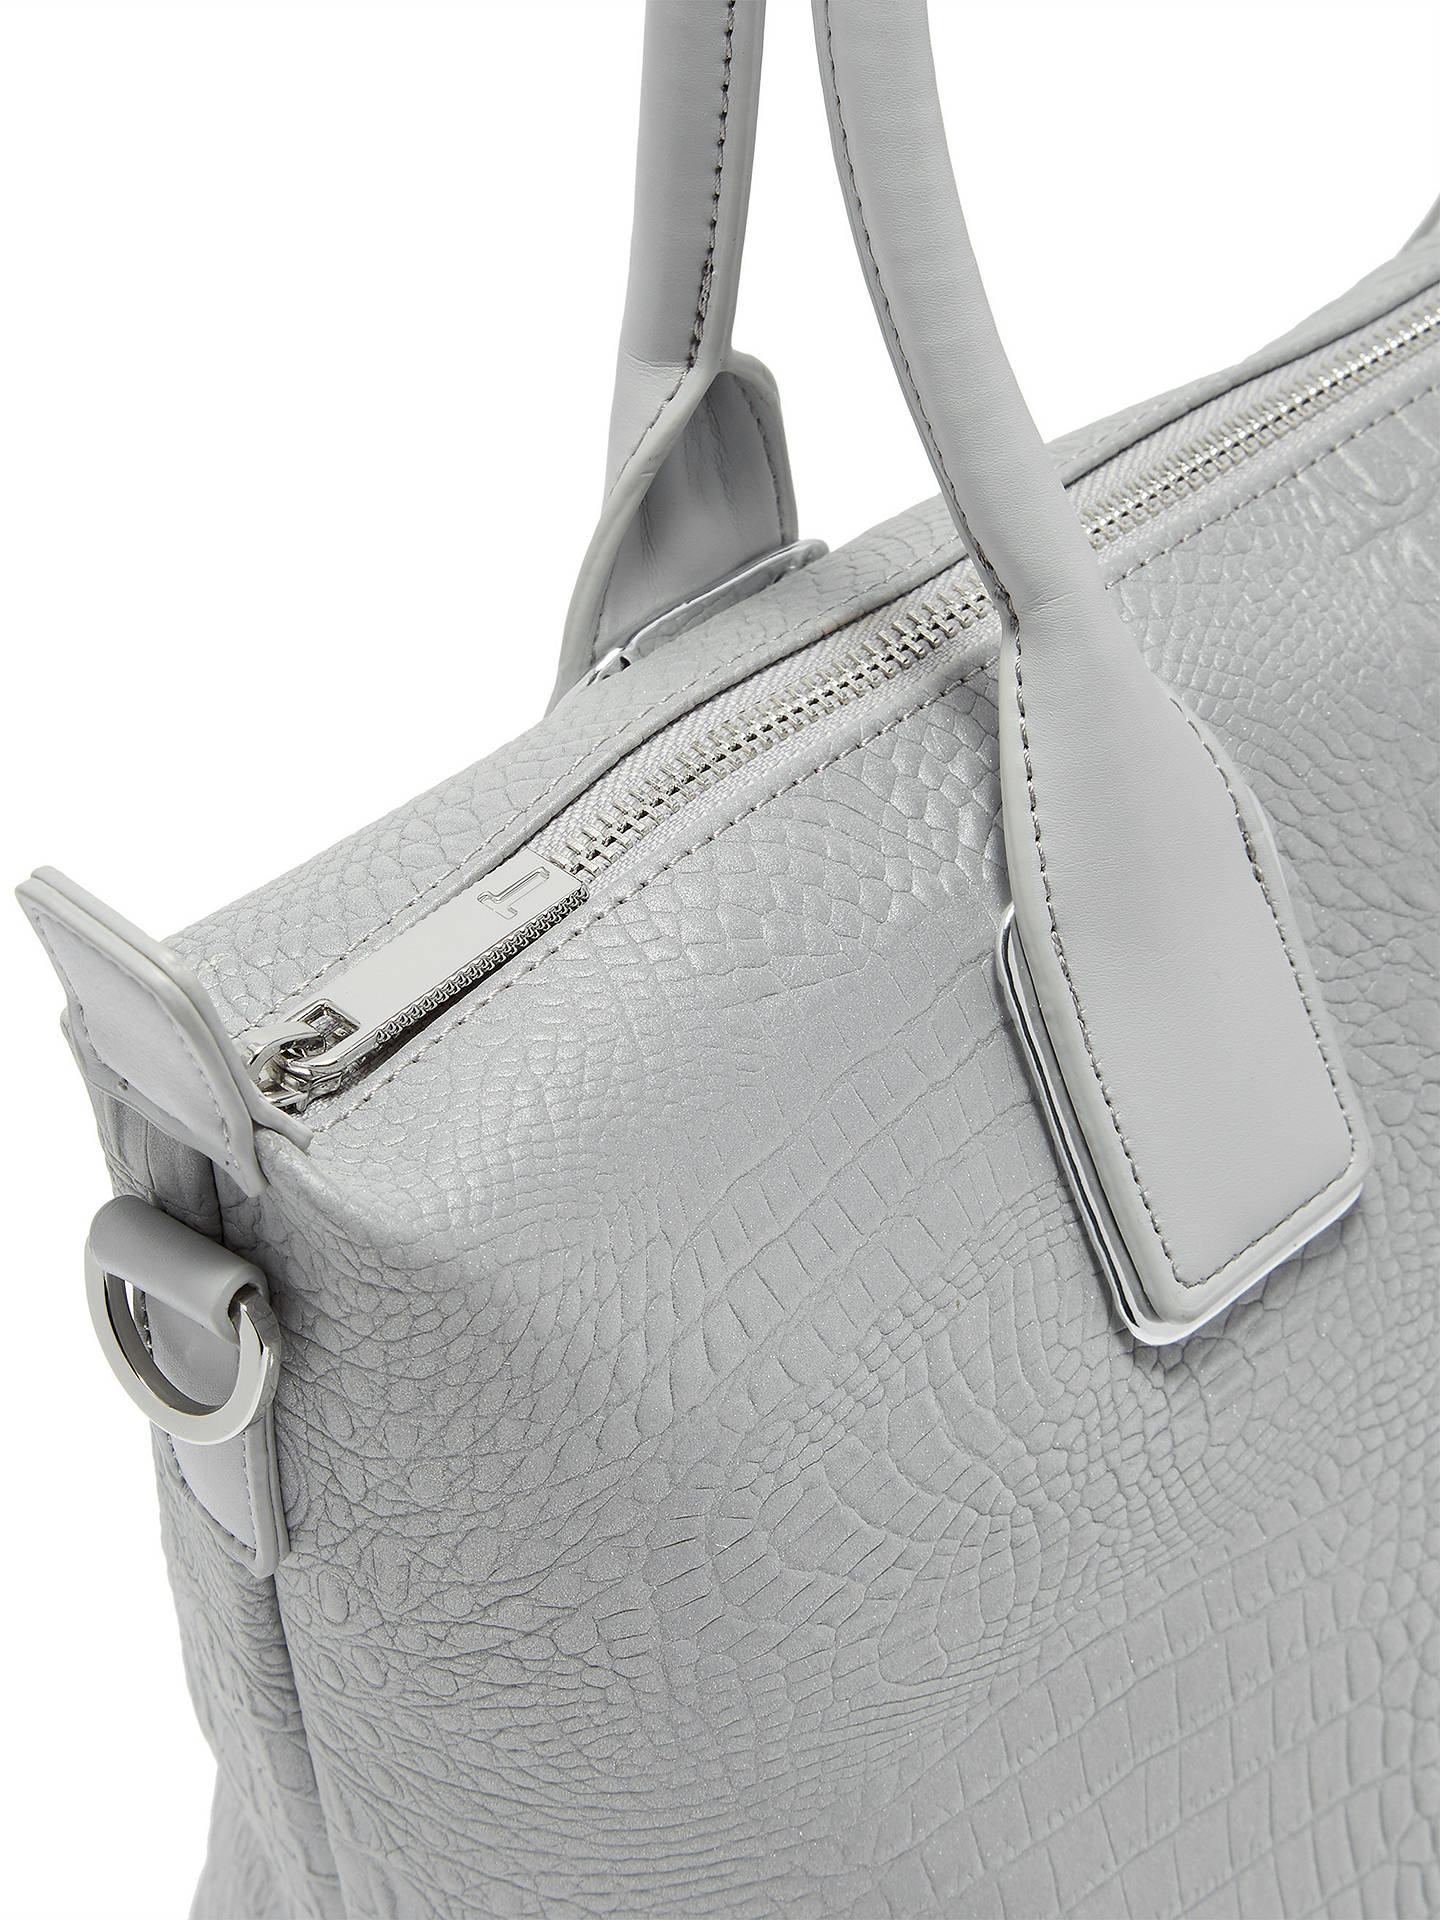 BuyTed Baker Ciscki Croc Effect Tote Bag, Silver Online at johnlewis.com